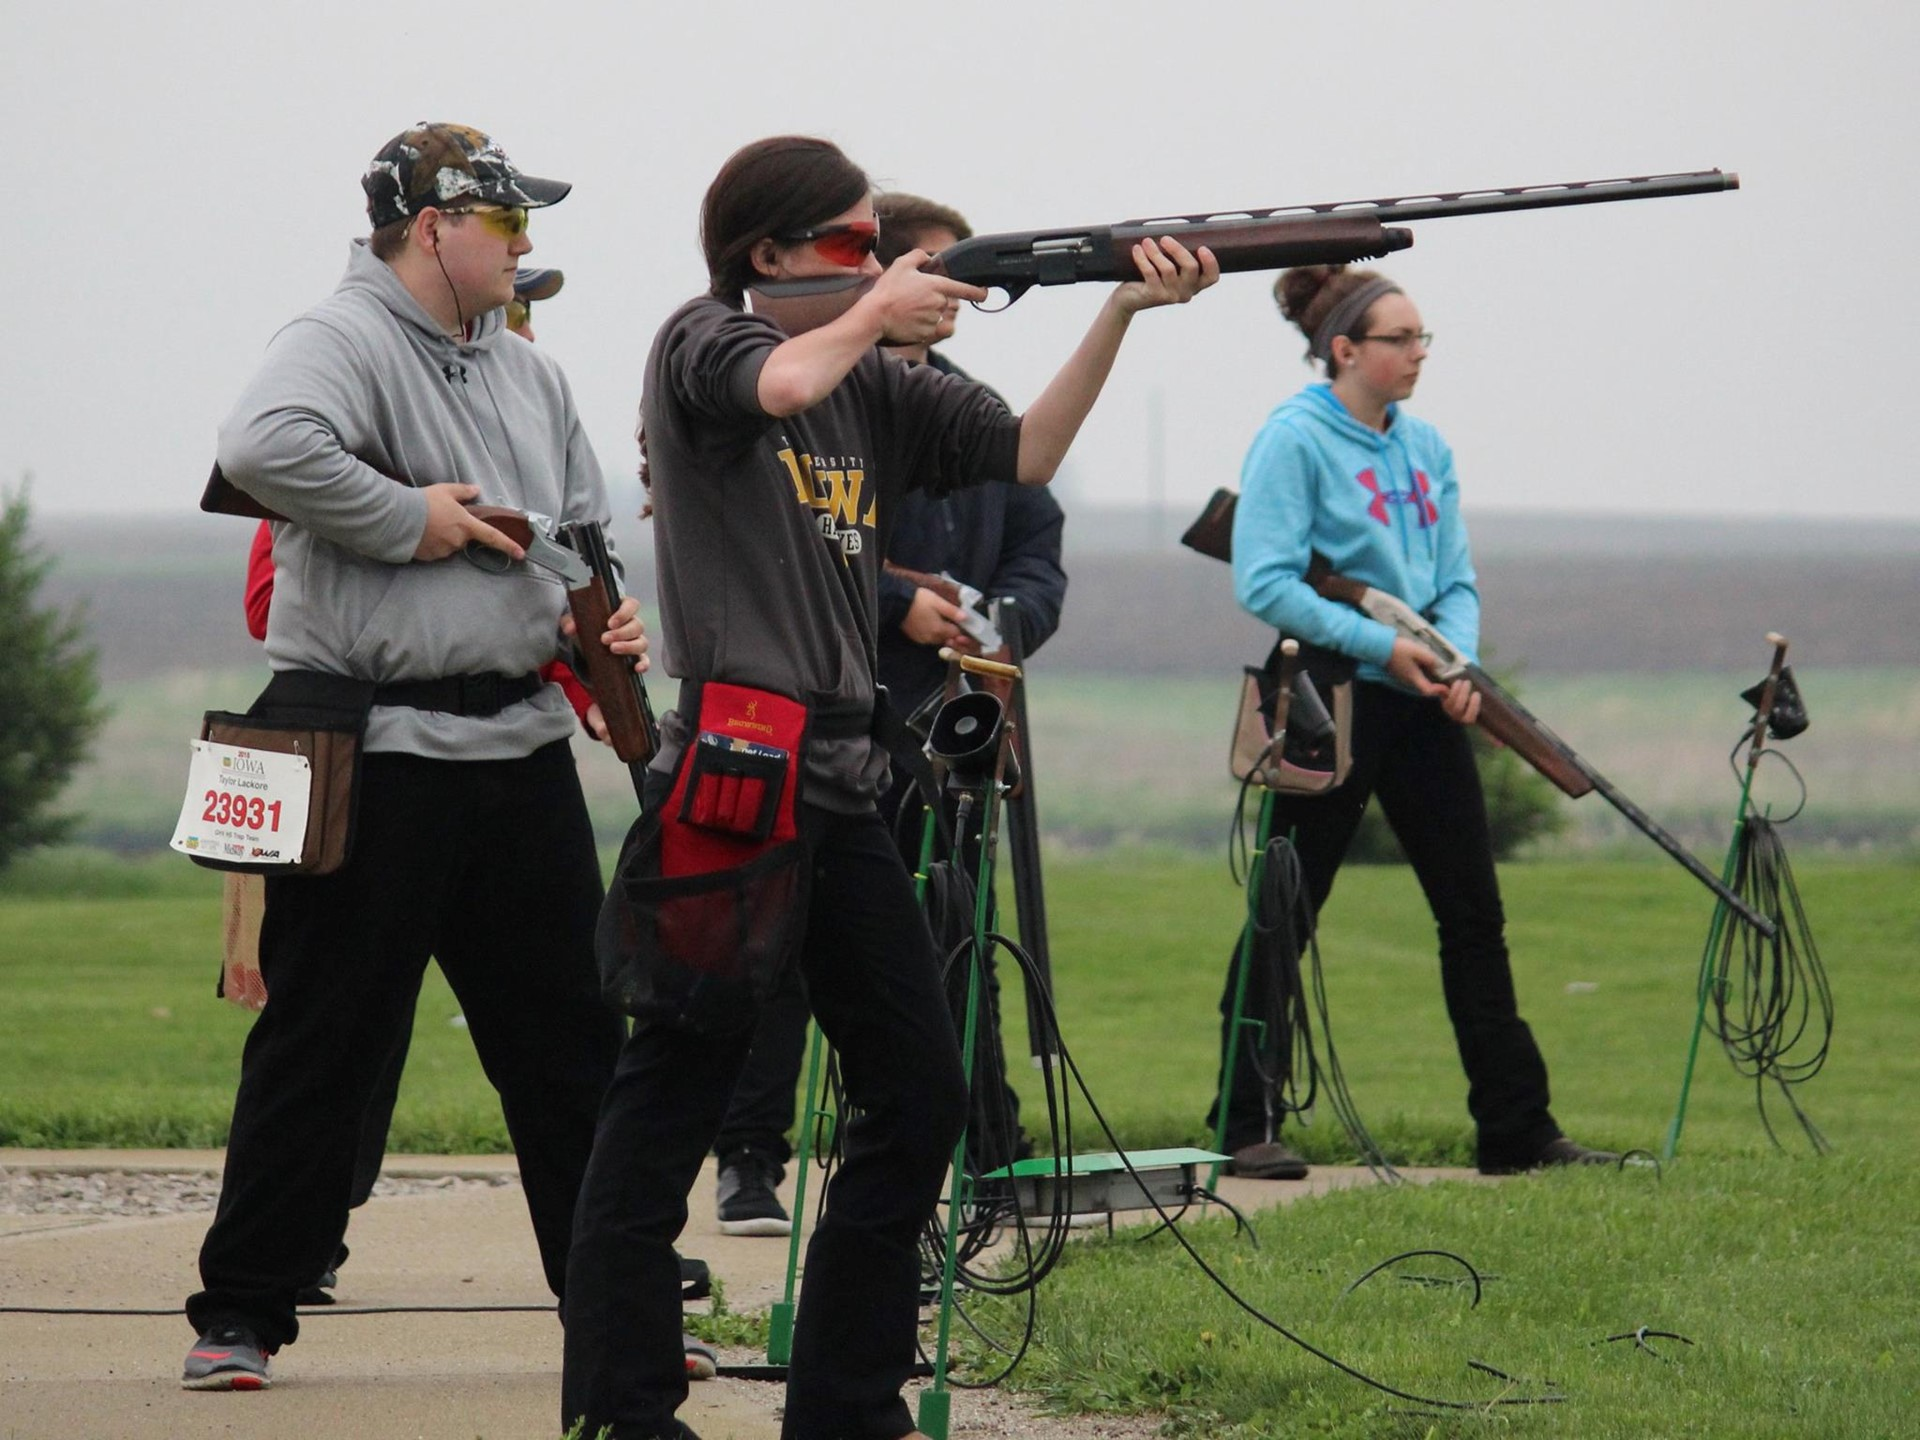 HIgh school students practicing trap shooting